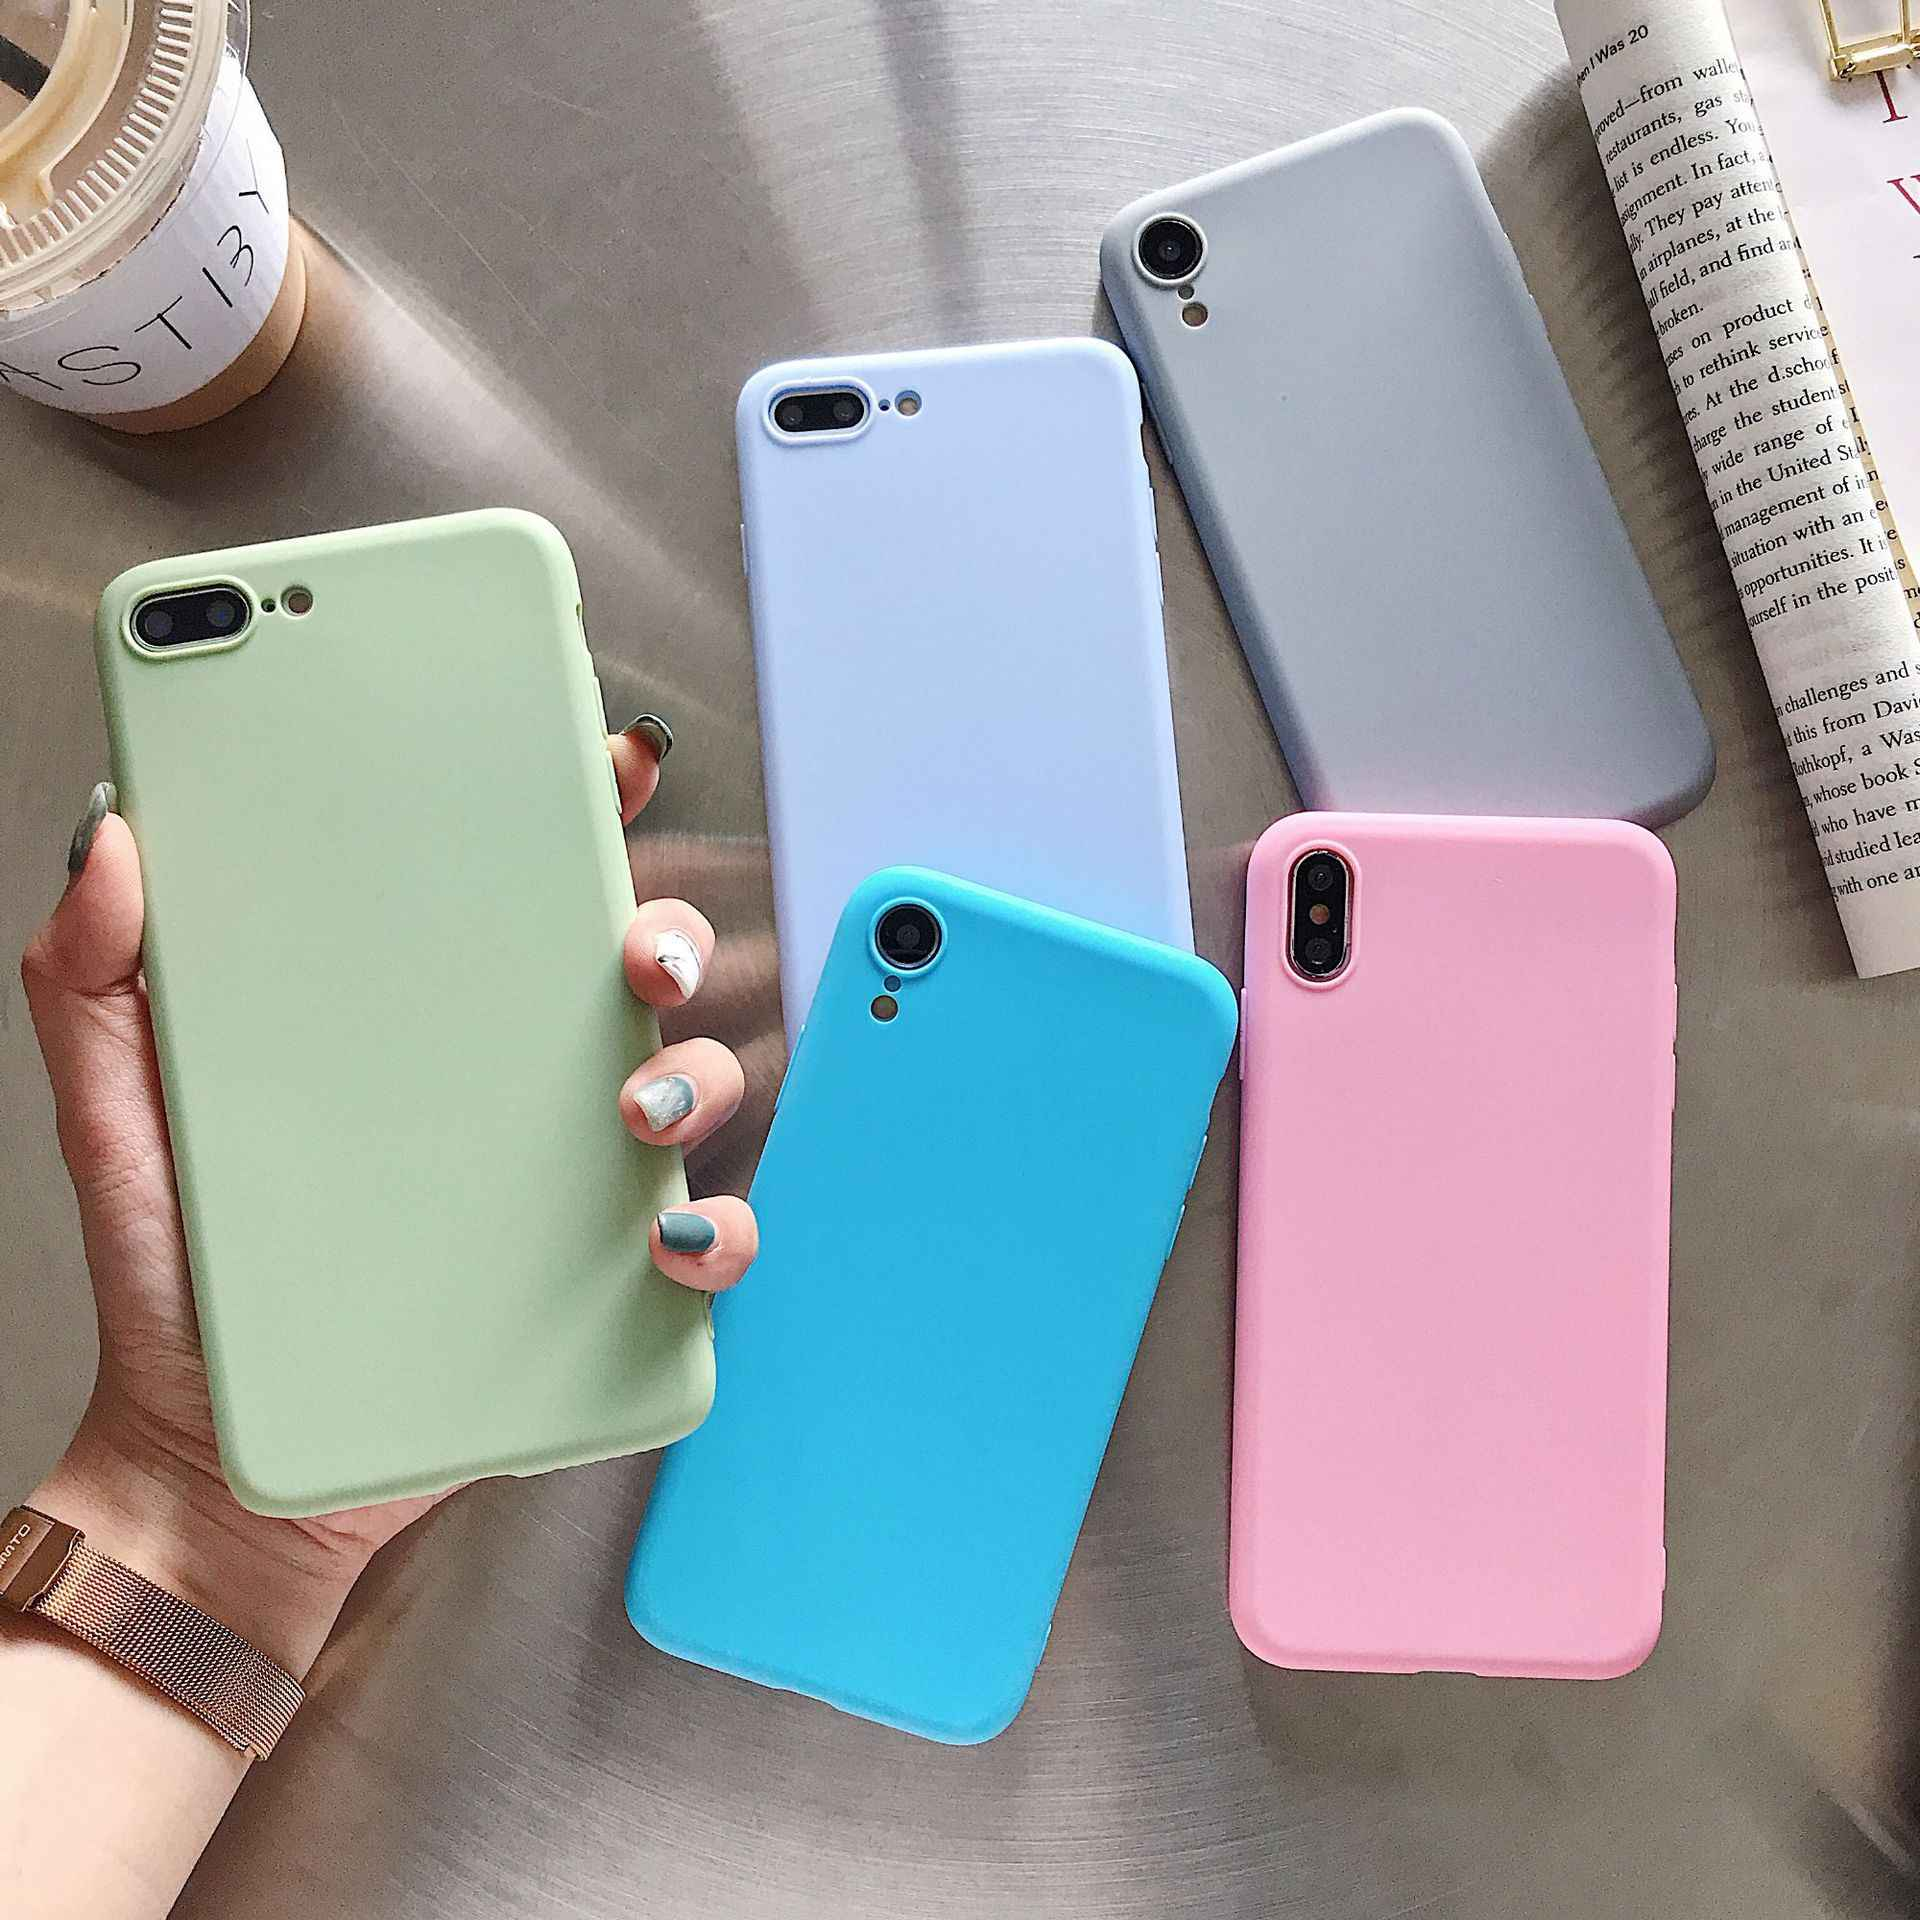 Ultra Thin Matte Candy Case for LG Q6 Q6A Q7 Q8 V10 V20 V30 V40 V50 G3 G4 G5 G6 G7 G8 ThinQ Matte Clear TPU Cover